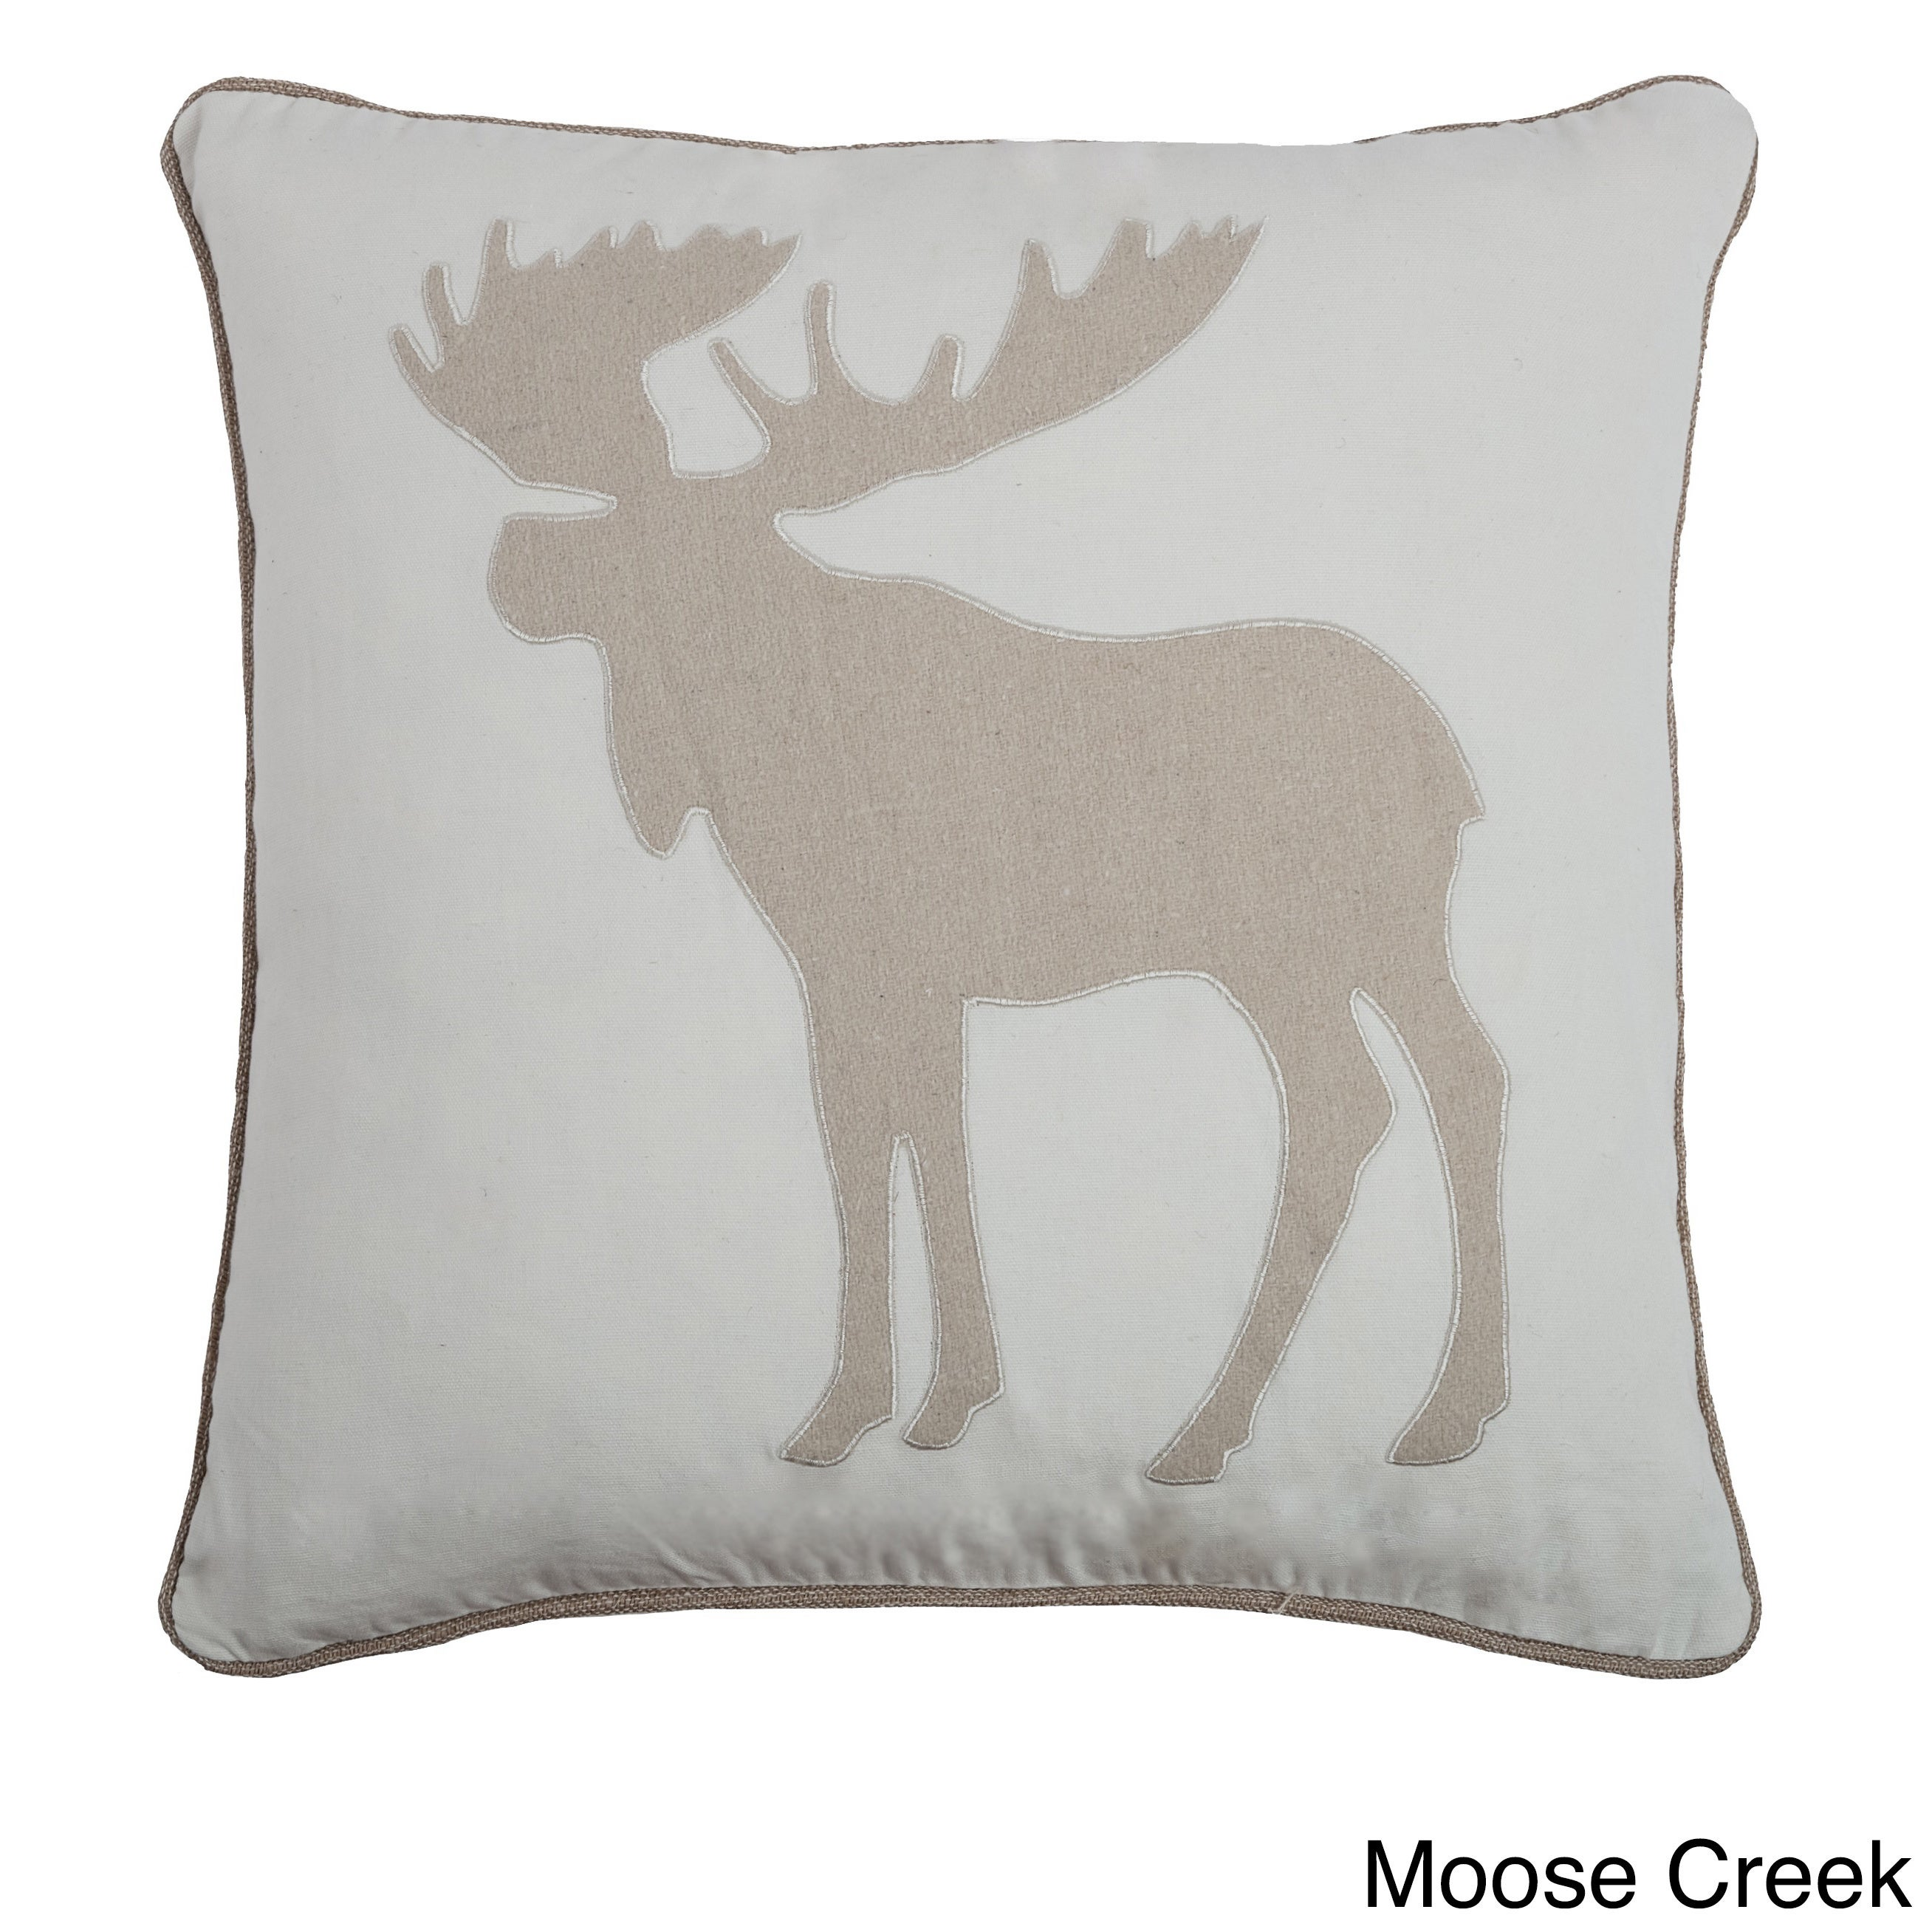 x chital axis sidebar pillows p fur throw addthis front sharing deer pillow